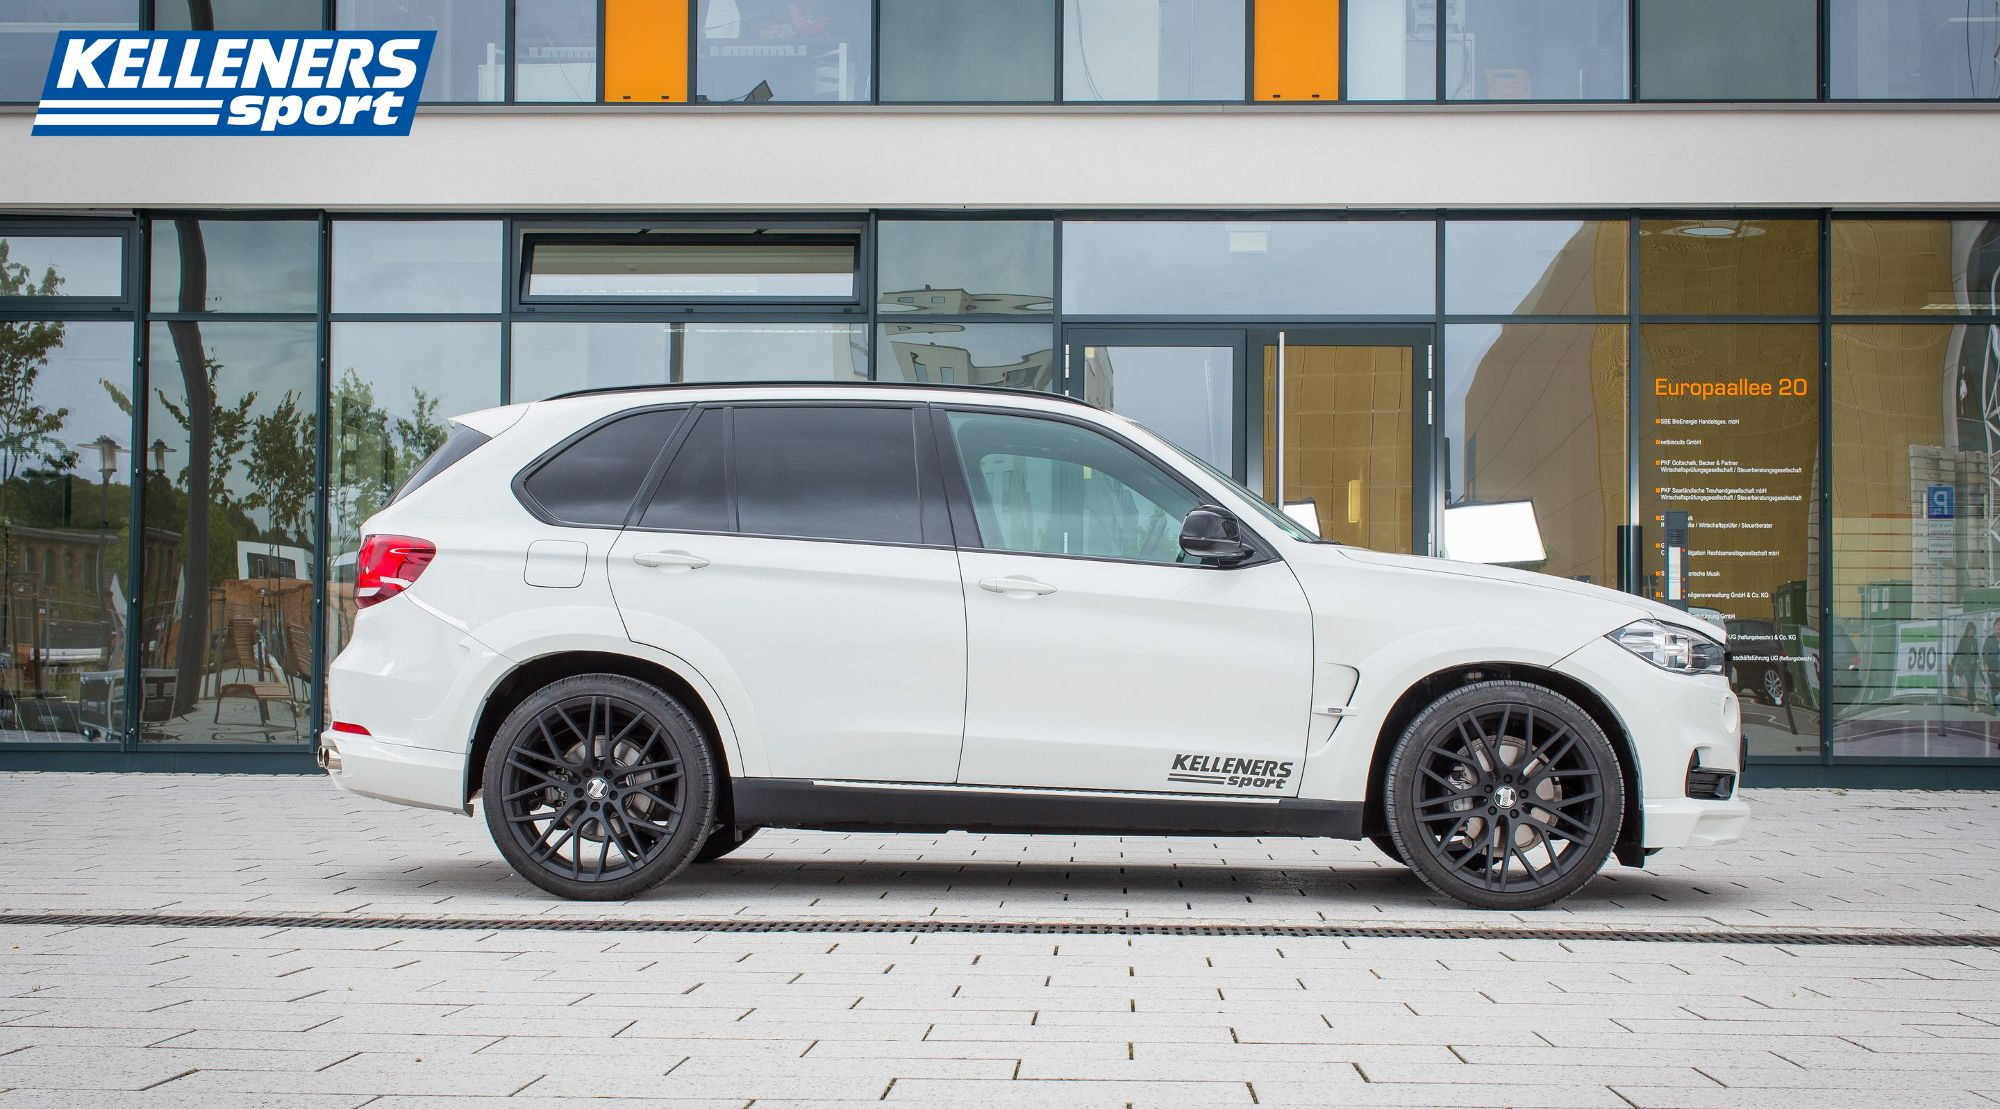 kelleners sport aerodynamikpaket bodykit f r bmw x5 f15 typ 4 0 d ebay. Black Bedroom Furniture Sets. Home Design Ideas